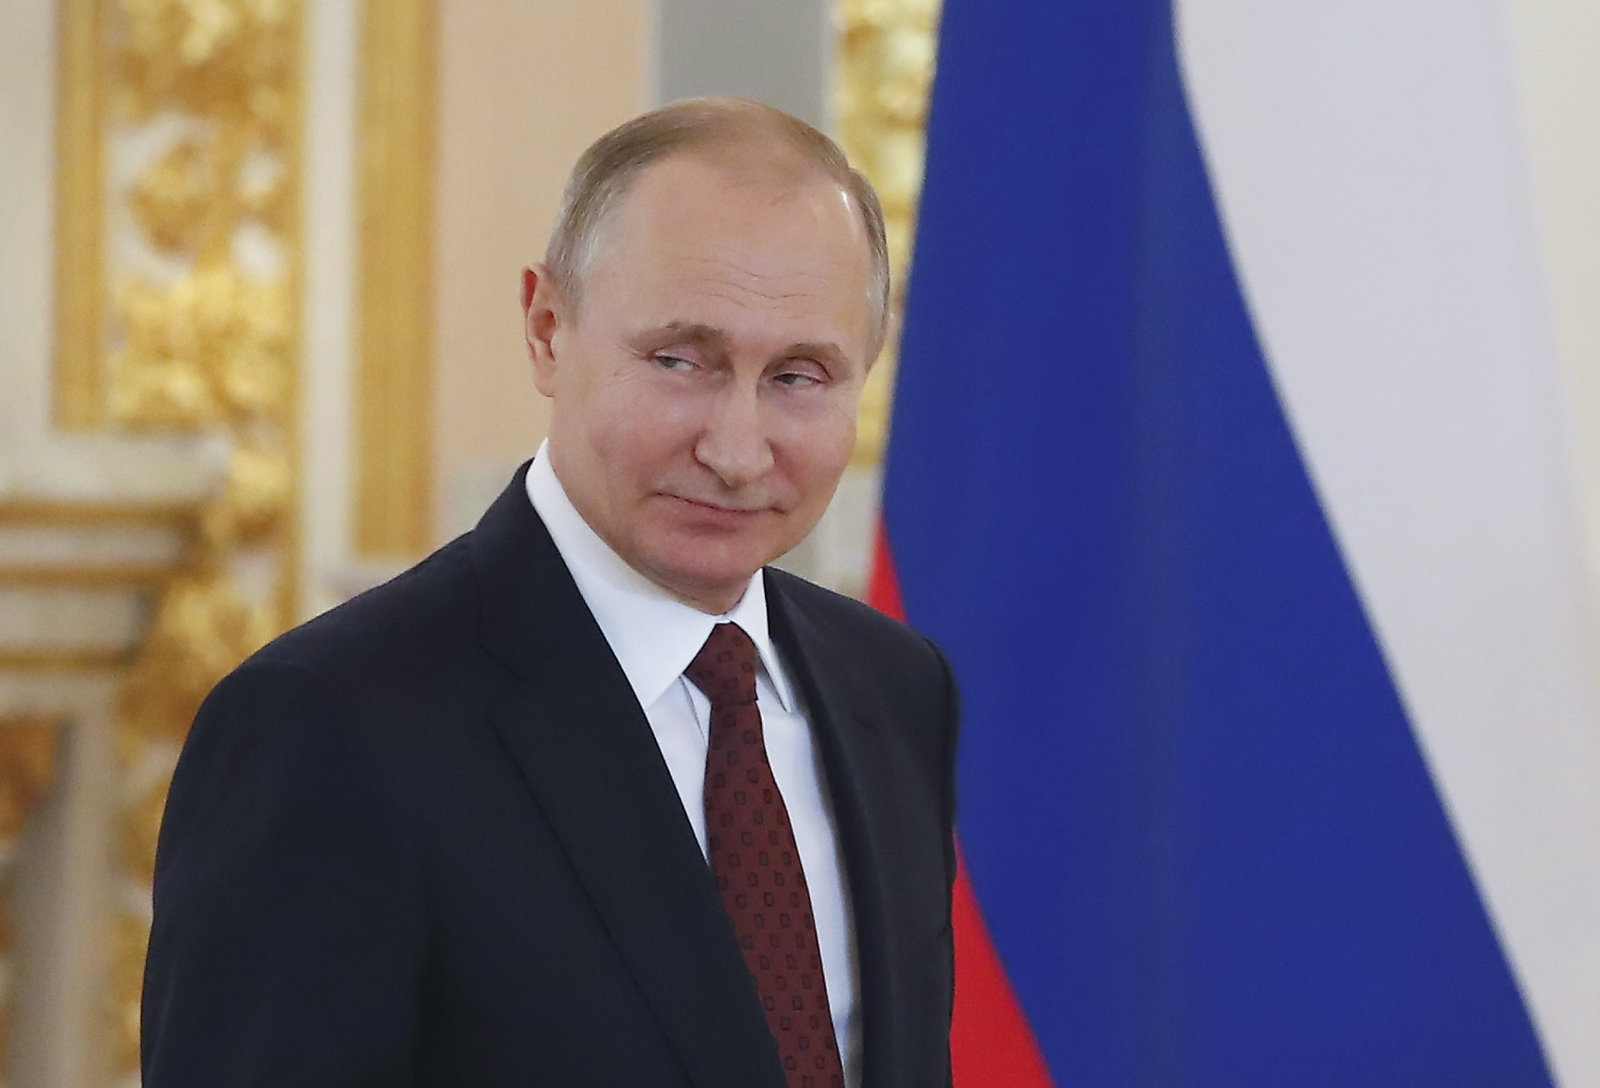 Russian President Vladimir Putin attends a ceremony to receive credentials from foreign ambassadors at the Kremlin in Moscow, Russia April 11, 2018. Sergei Ilnitsky/Pool via REUTERS